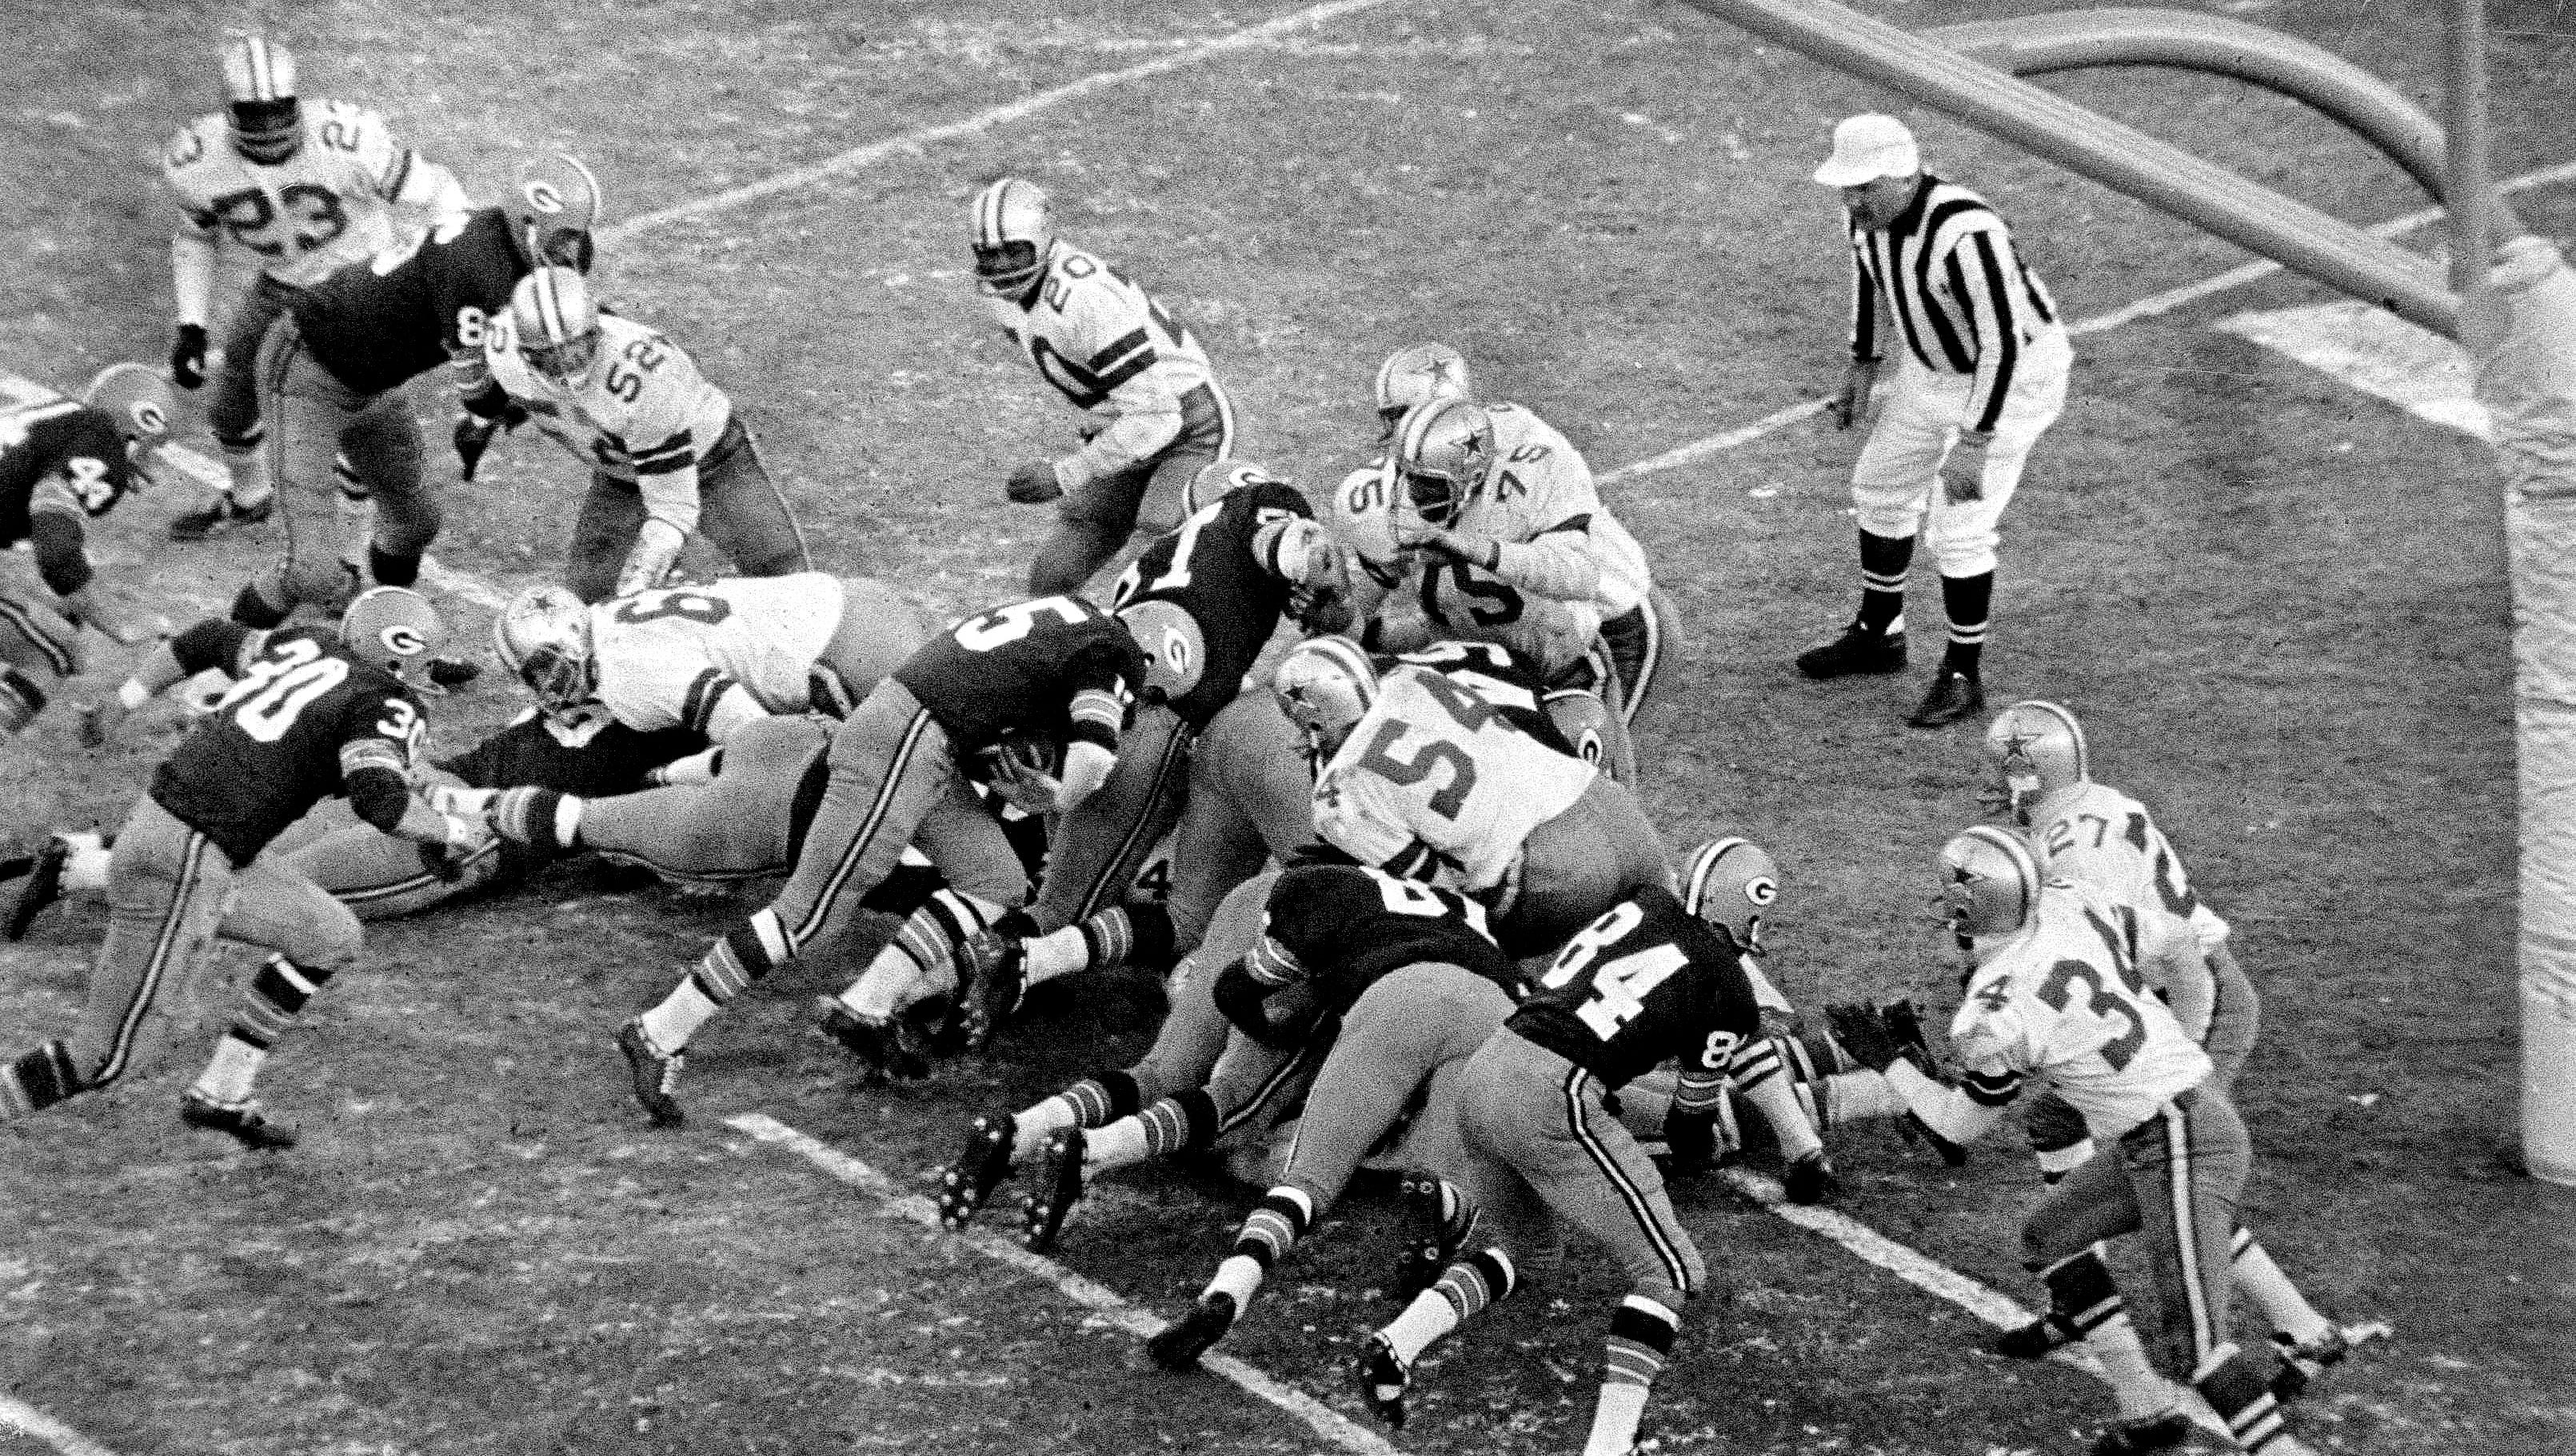 The Ice Bowl 50 Years Later An Oral History Of Packers Cowboys 1967 Nfl Championship Game